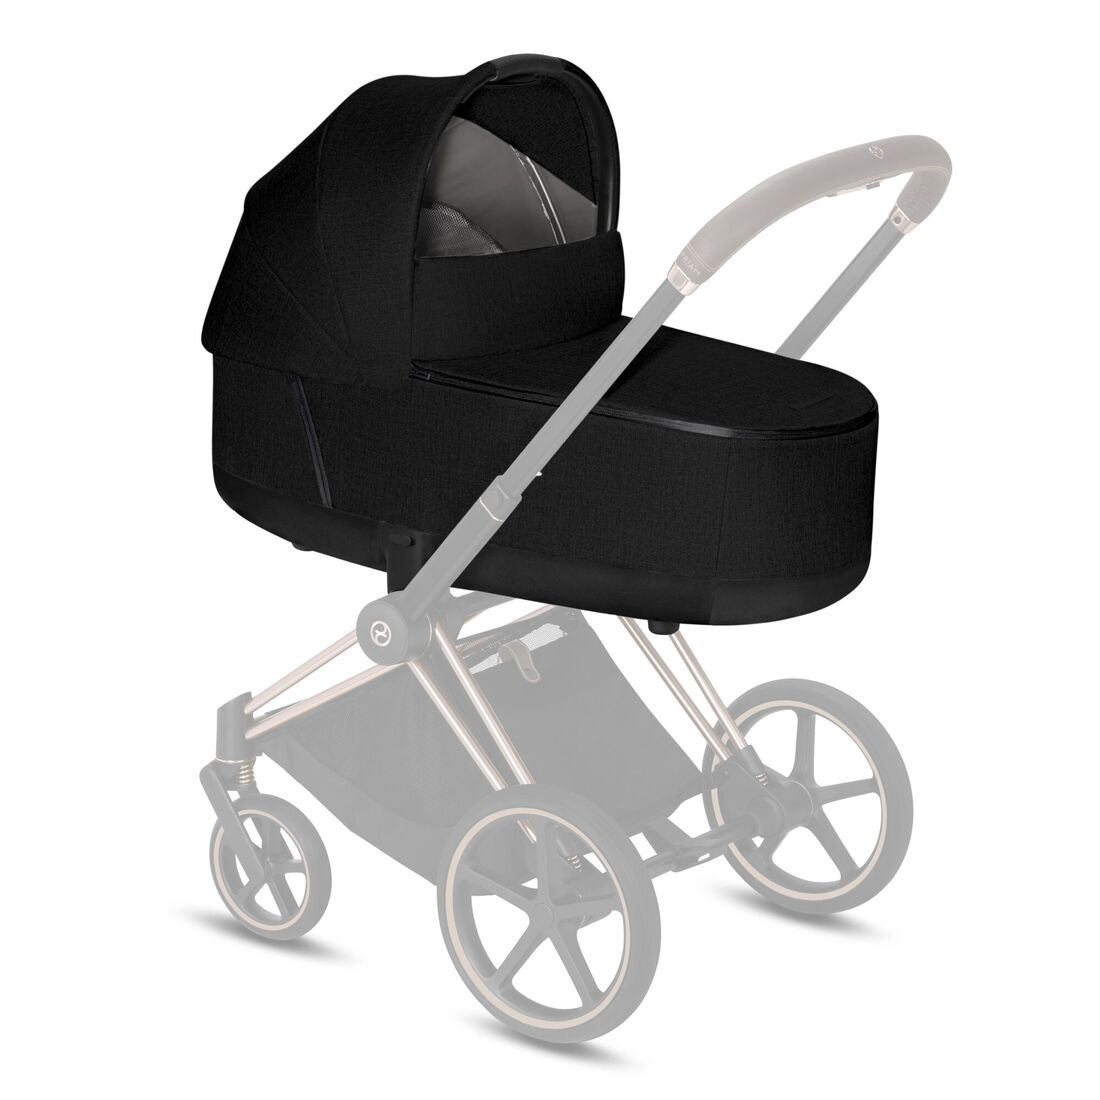 CYBEX Priam Lux Carry Cot - Stardust Black Plus in Stardust Black Plus large image number 2